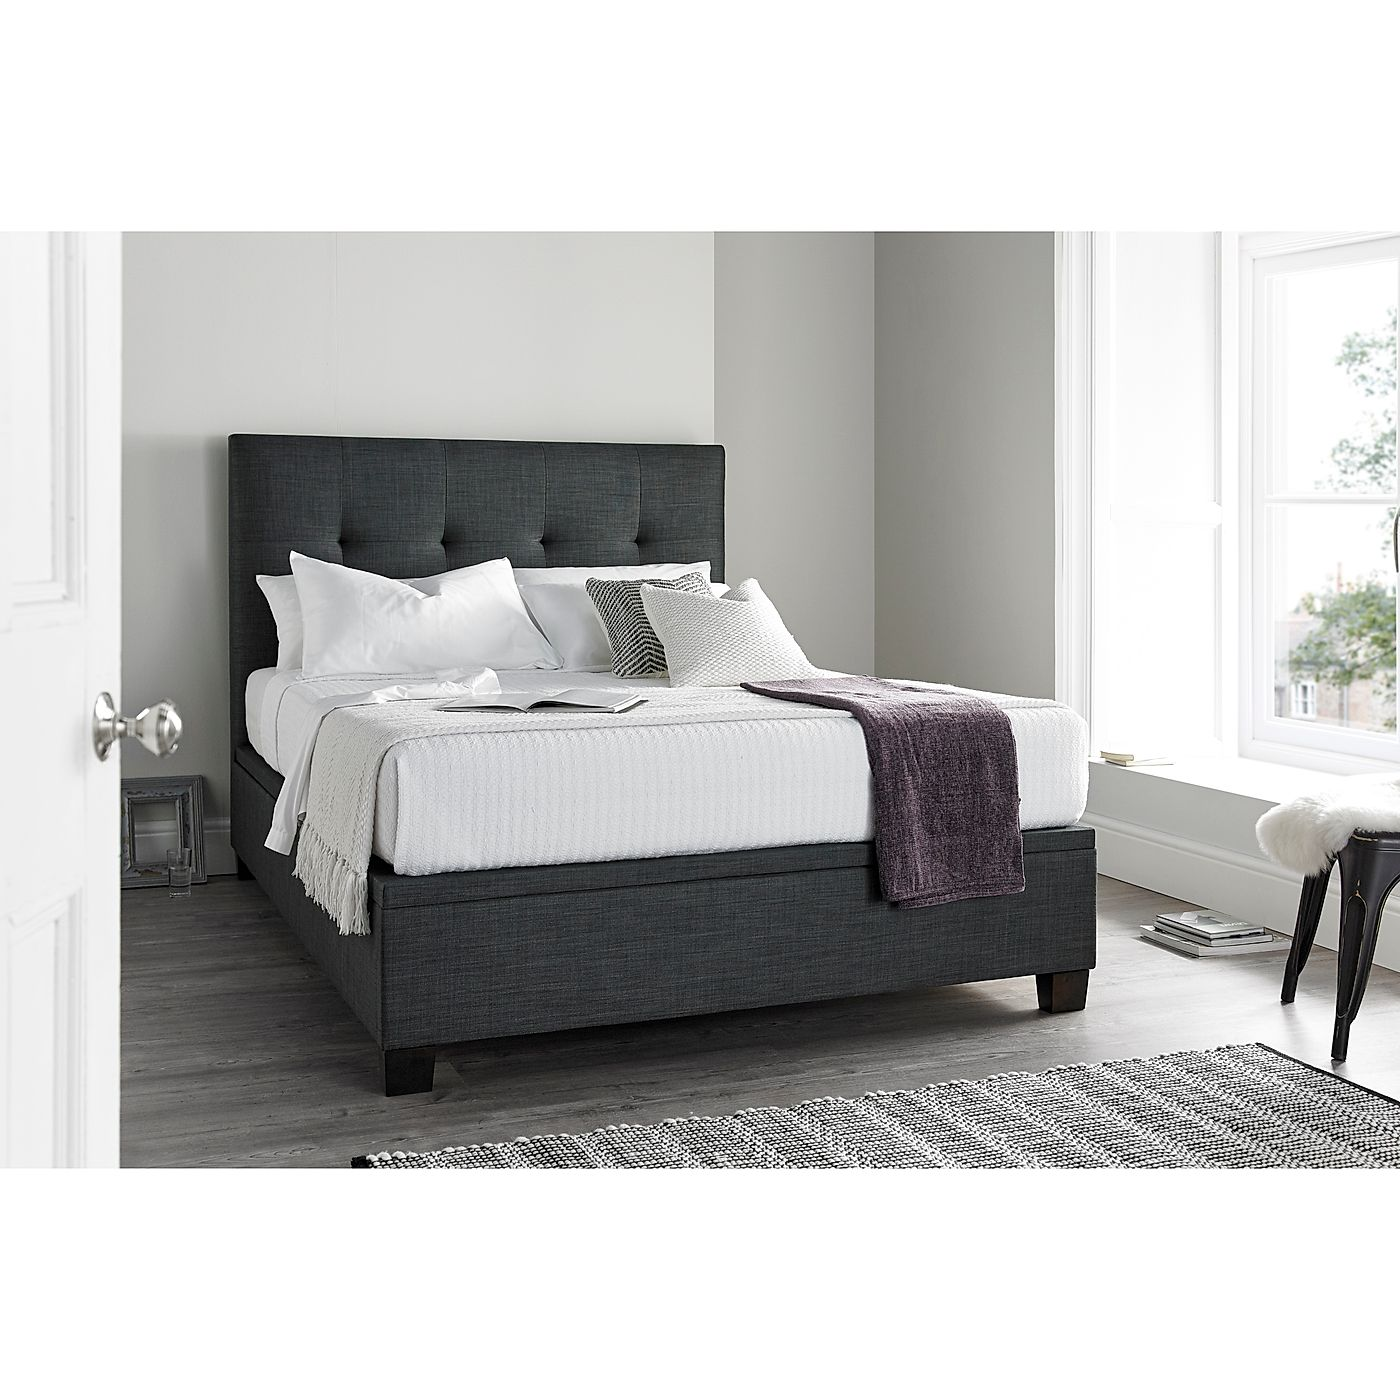 Marvelous Kaydian Walkworth Slate Fabric Ottoman Storage Bed King Size Pabps2019 Chair Design Images Pabps2019Com